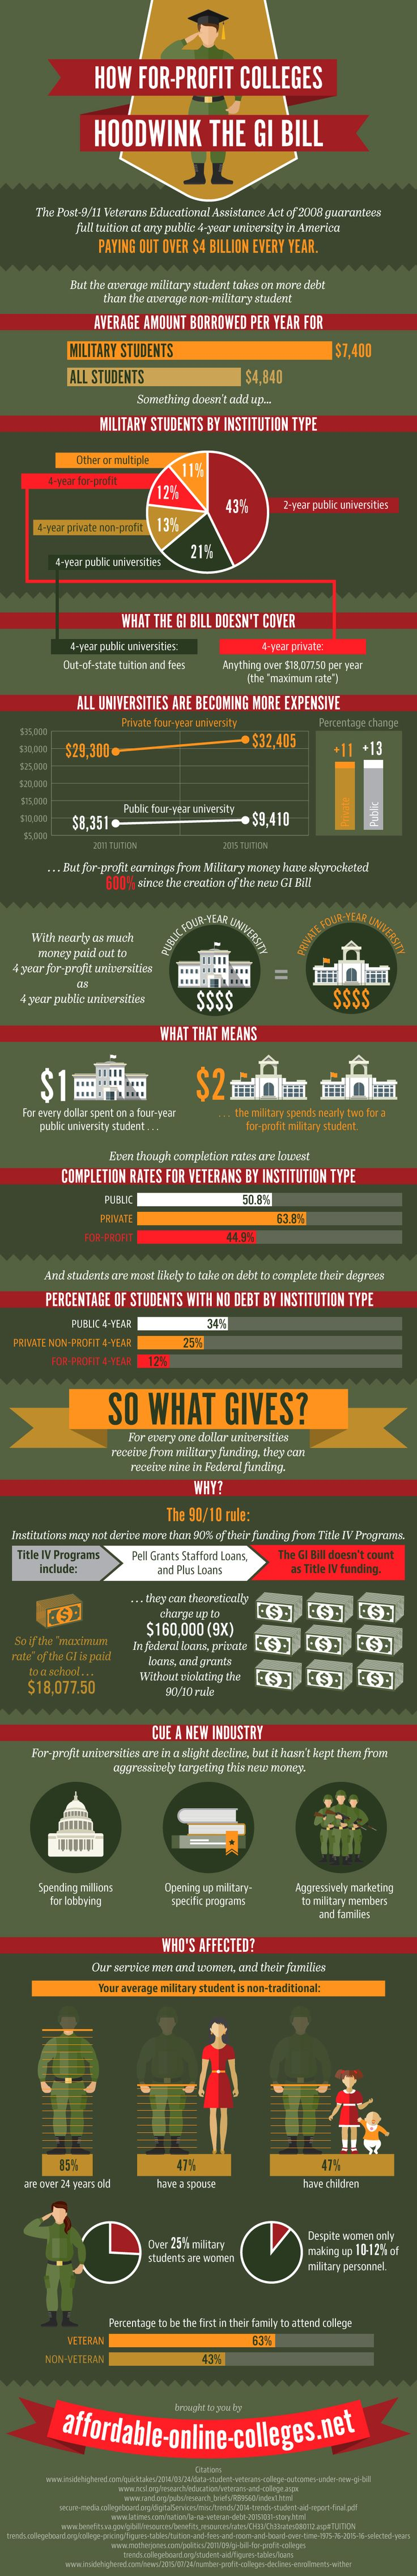 How For-Profit Colleges Hoodwink the GI Bill How For-Profit Colleges Hoodwink the GI Bill